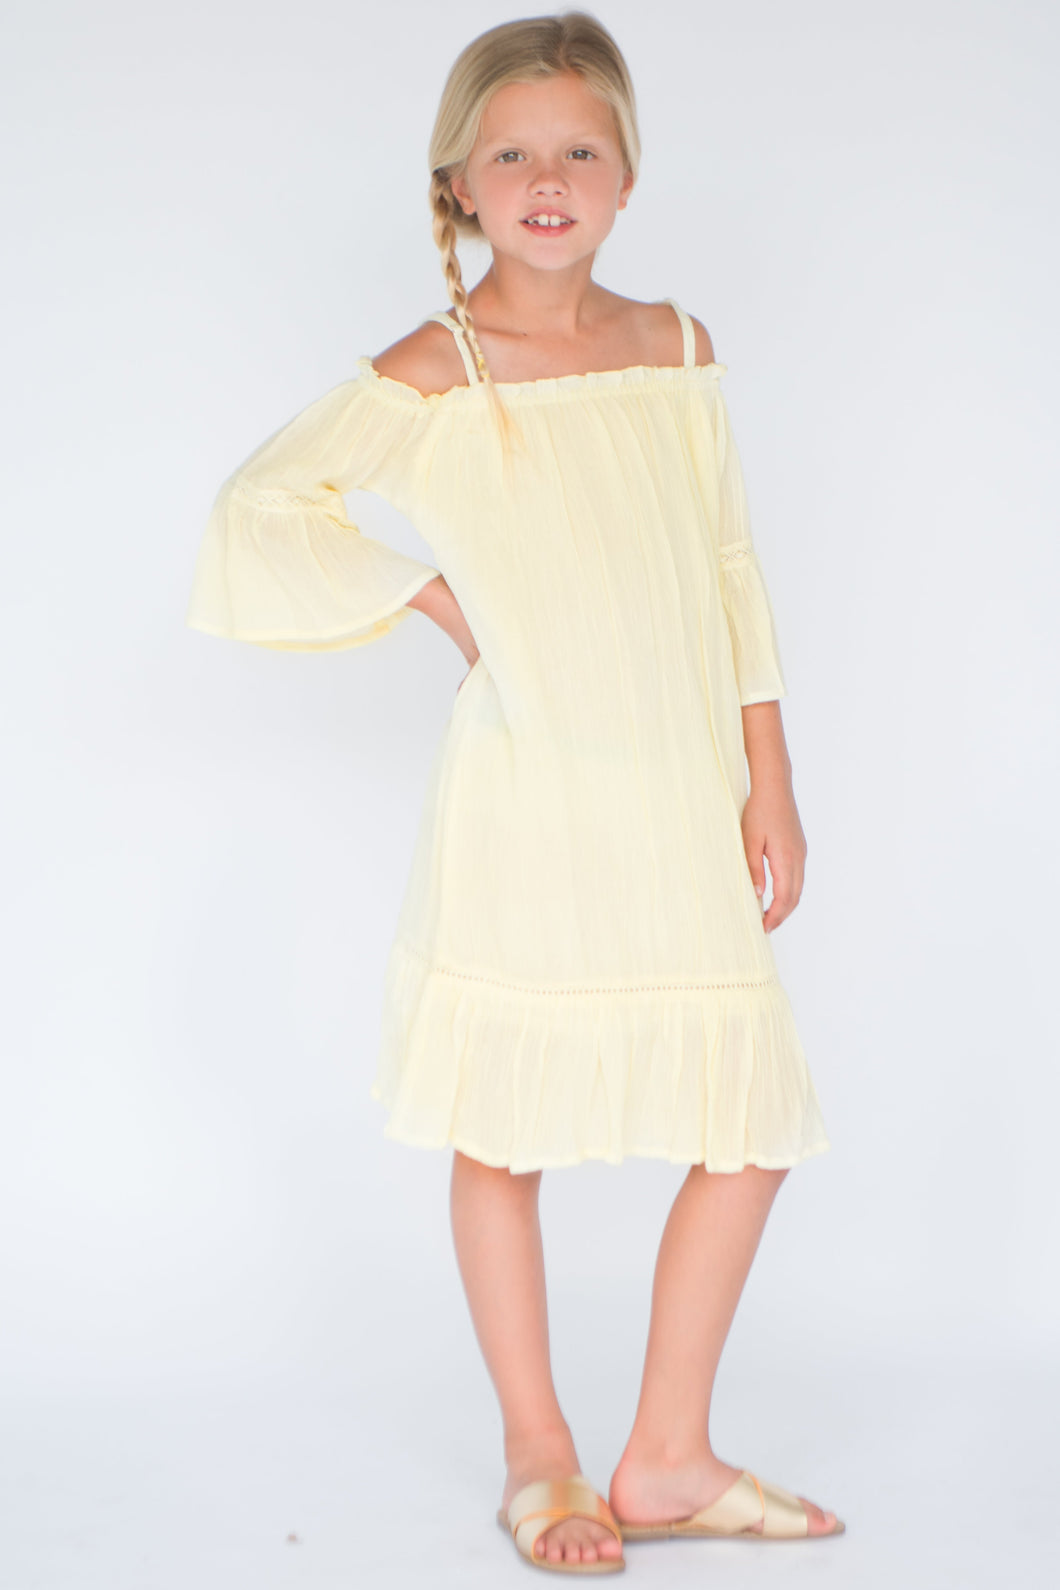 Pastel Yellow Off-Shoulder Dress - Kids Clothing, Dress - Girls Dress, Yo Baby Online - Yo Baby